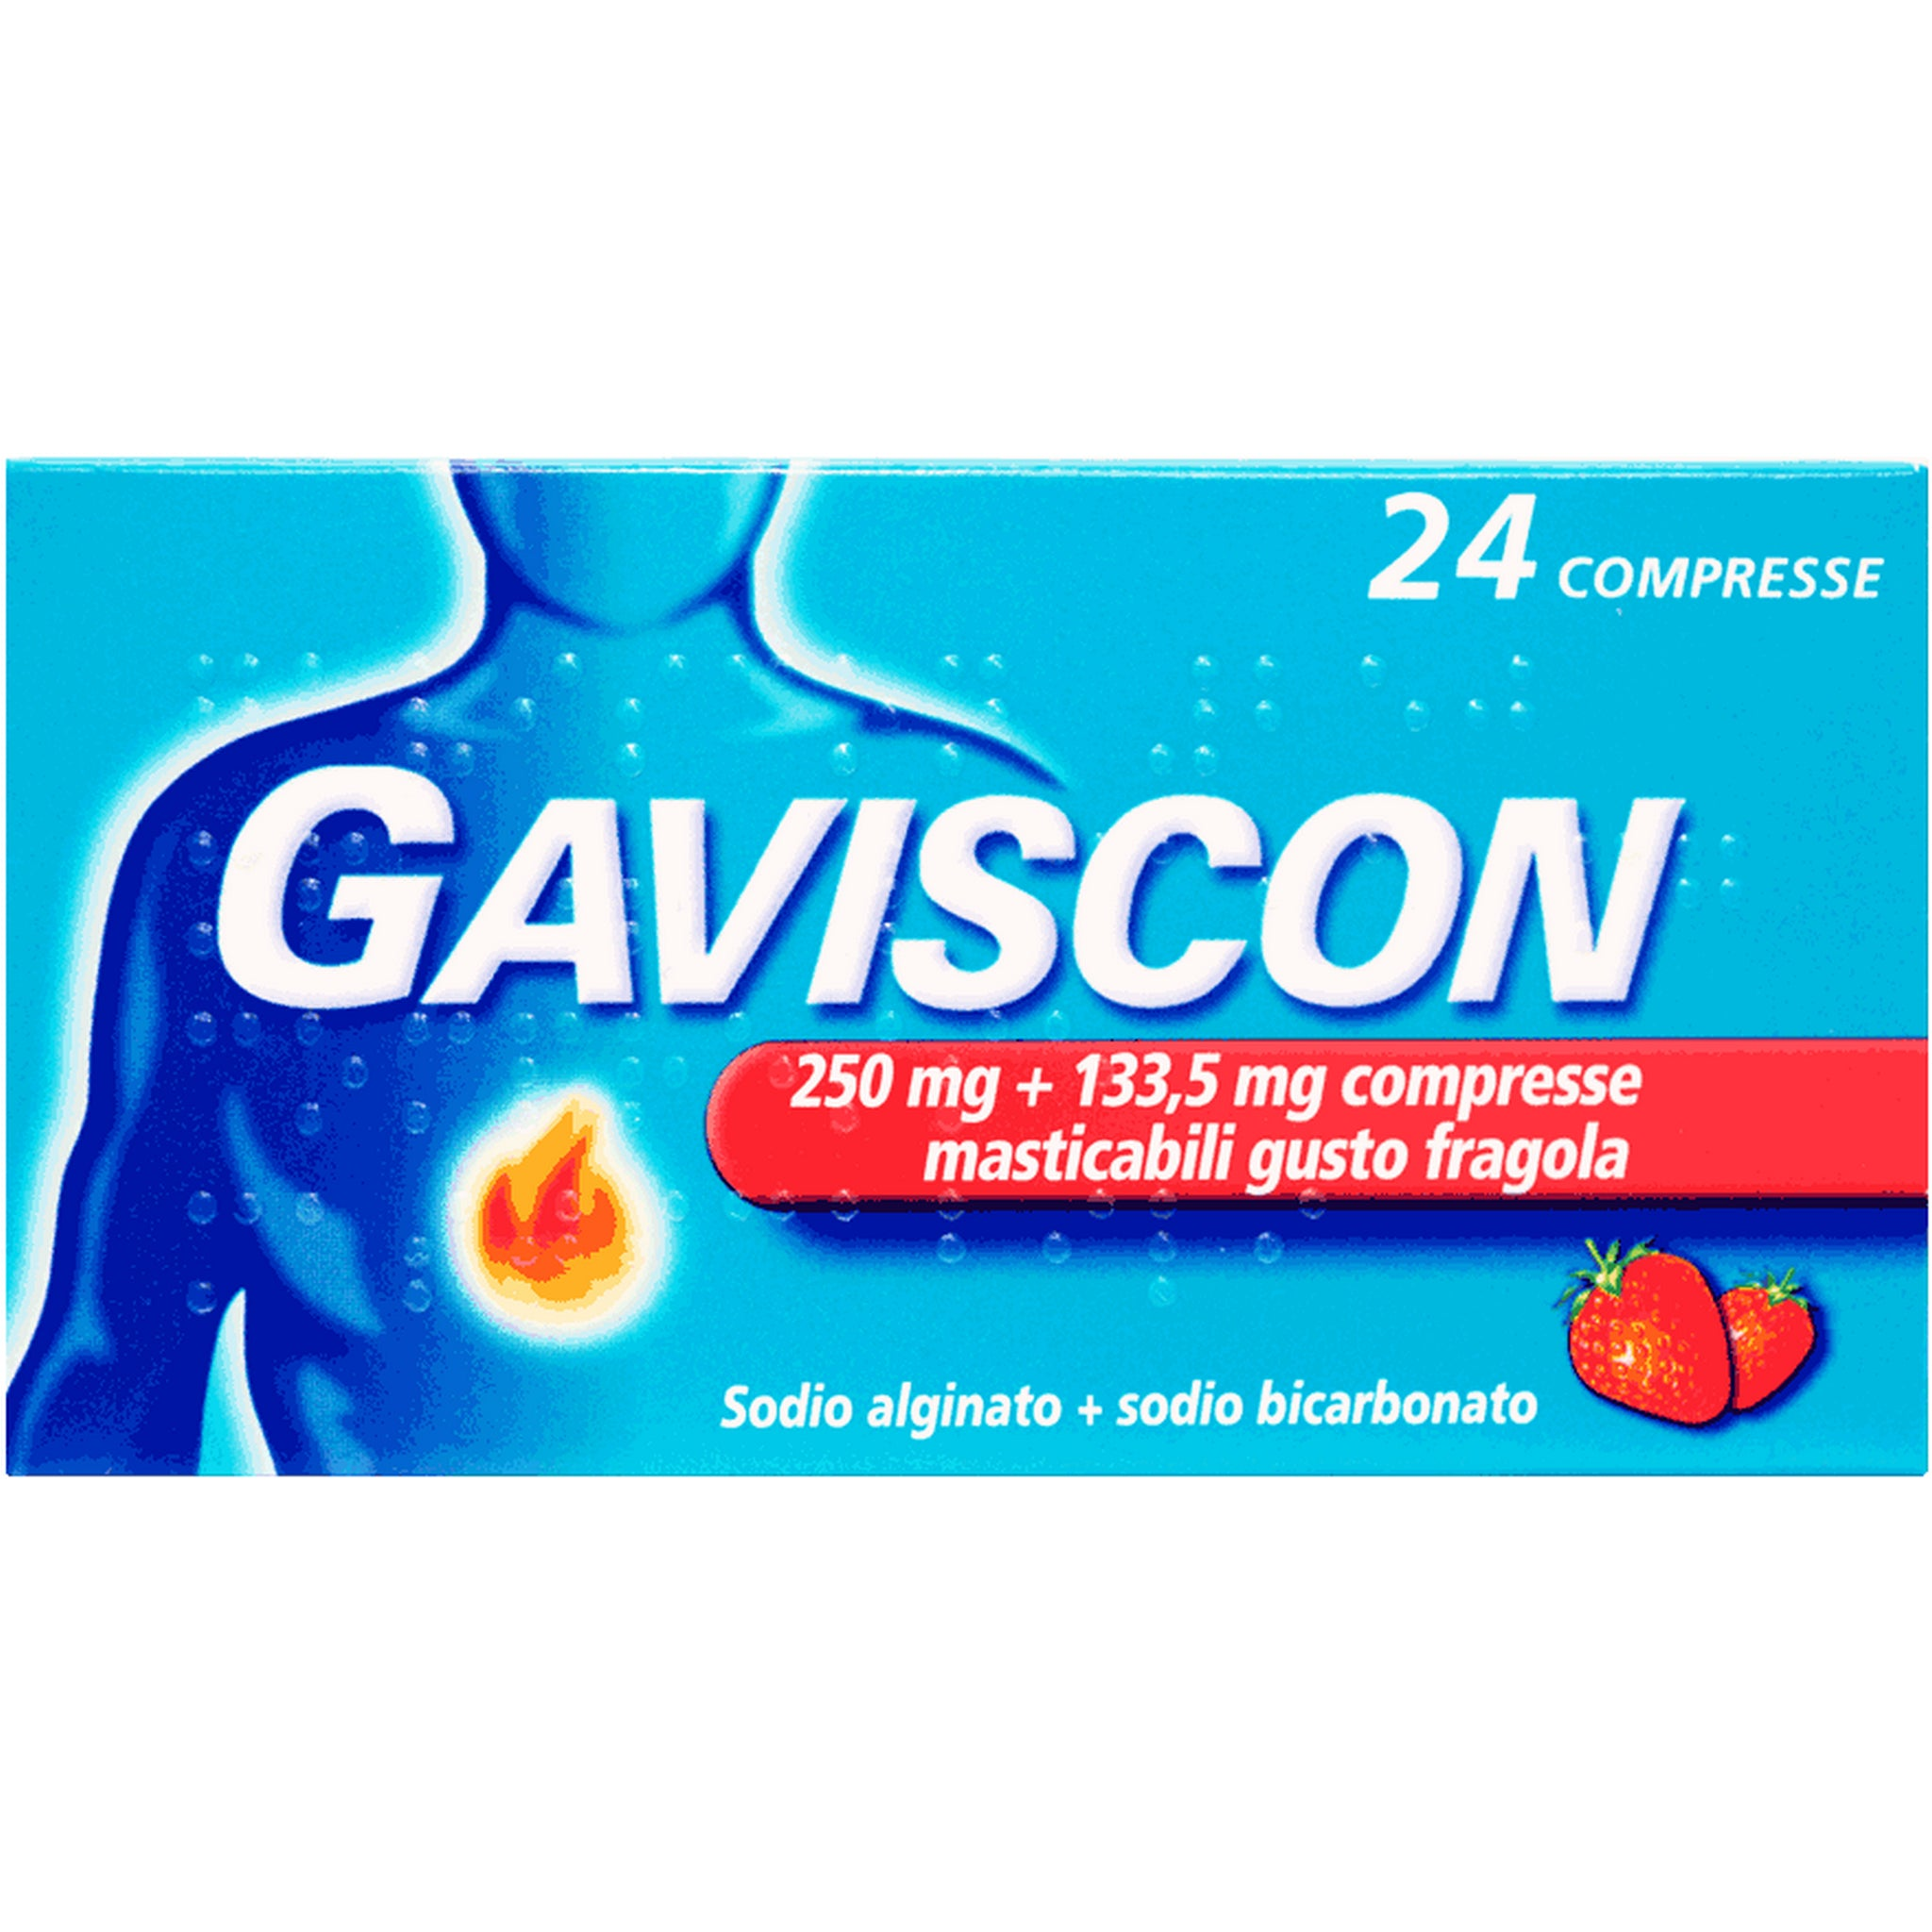 GAVISCON 24 COMPRESSE FRAGOLA 250+133,5MG